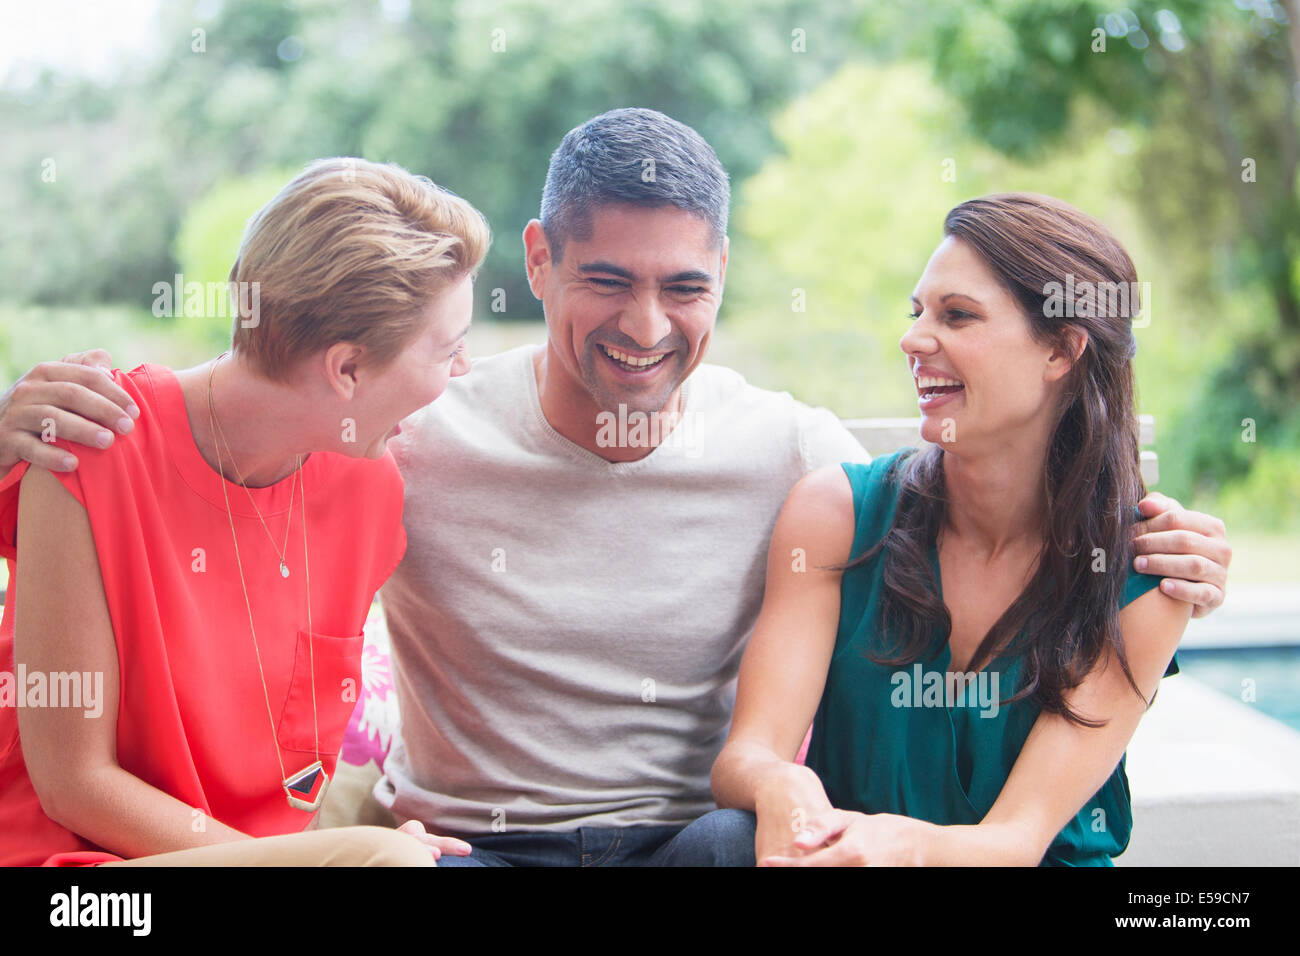 Friends relaxing together outdoors - Stock Image